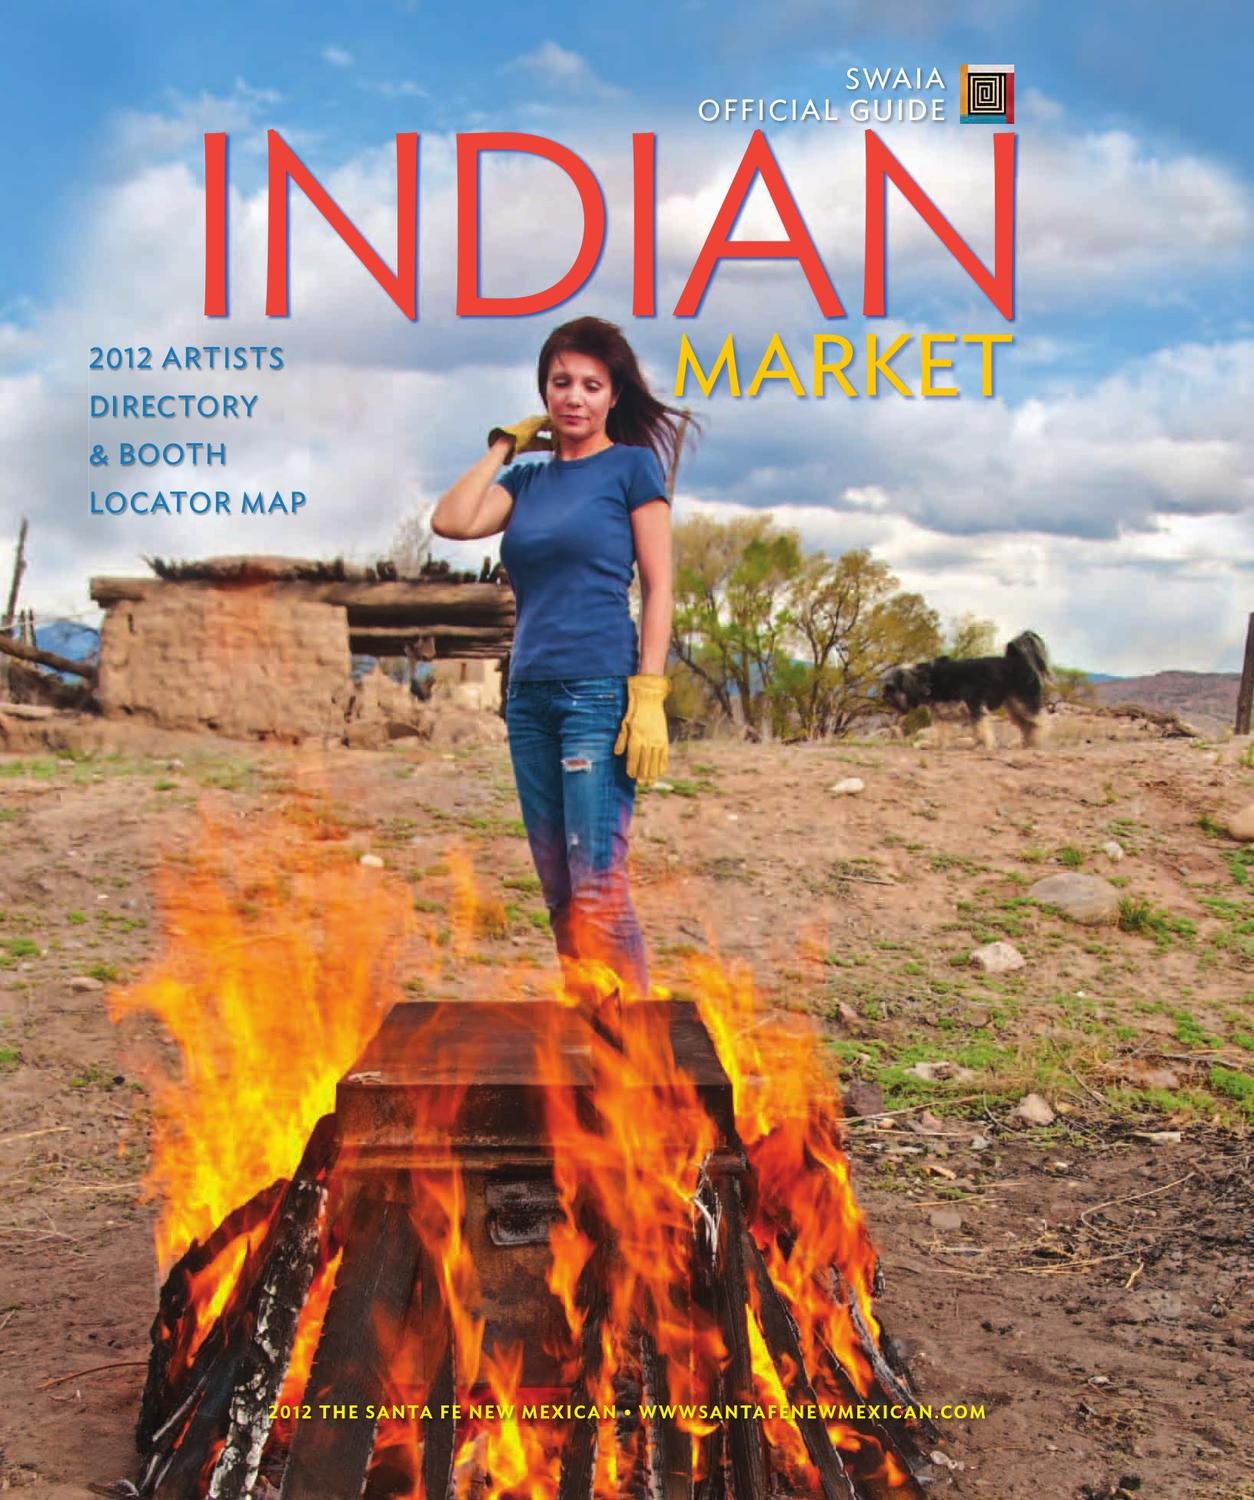 Indian Market Swaia Official Guide 2012 By The New Mexican Issuu Find many great new & used options and get the best deals for dvd r2 the broken chain 1993 eric schweig wes studi pierce brosnan region 2 at the best online prices at ebay! indian market swaia official guide 2012